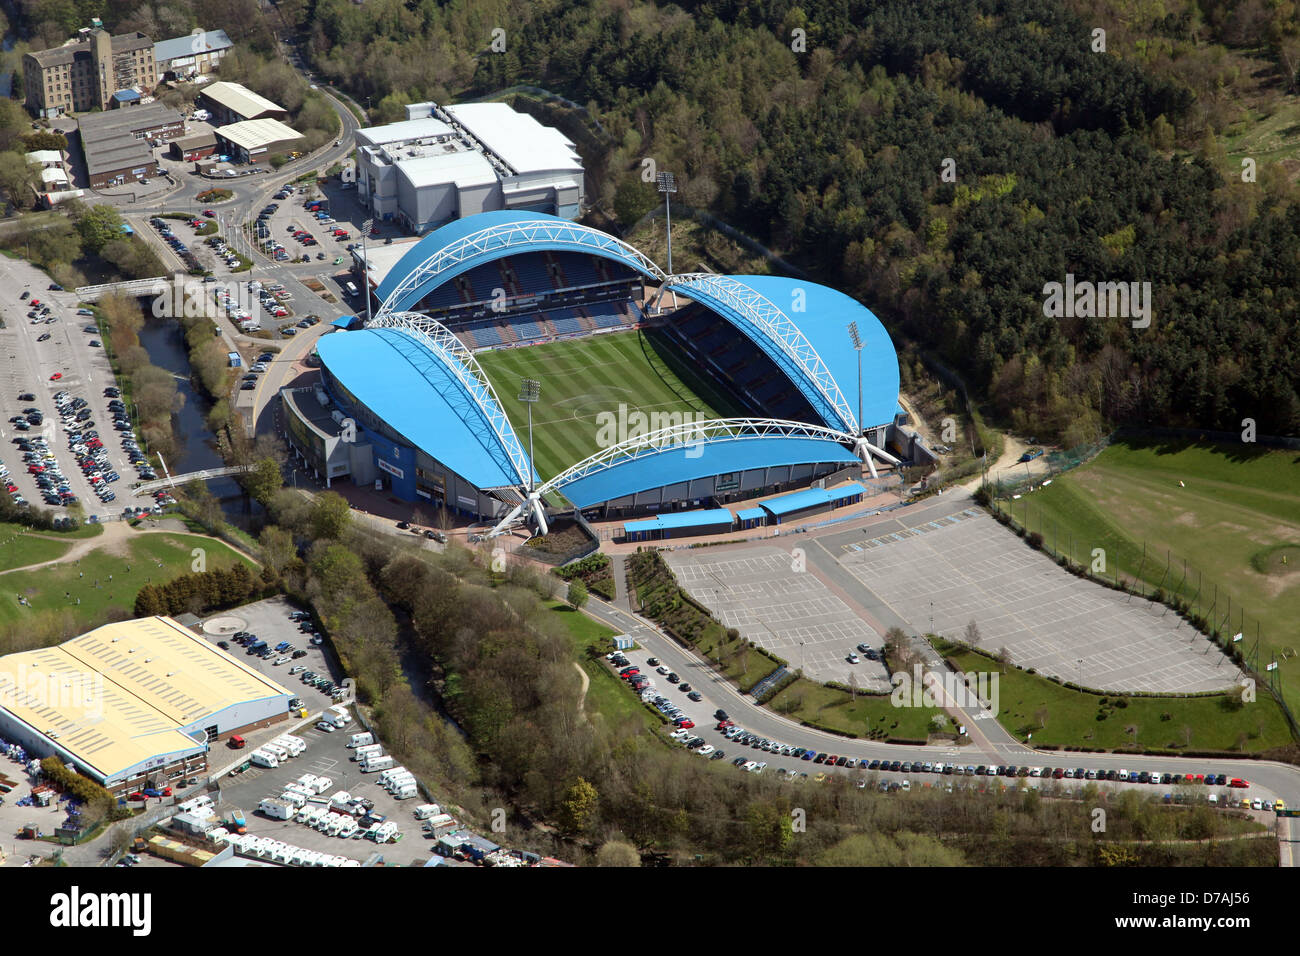 aerial view of the John Smith's Stadium formerly the Galpharm Stadium in Huddersfield - Stock Image